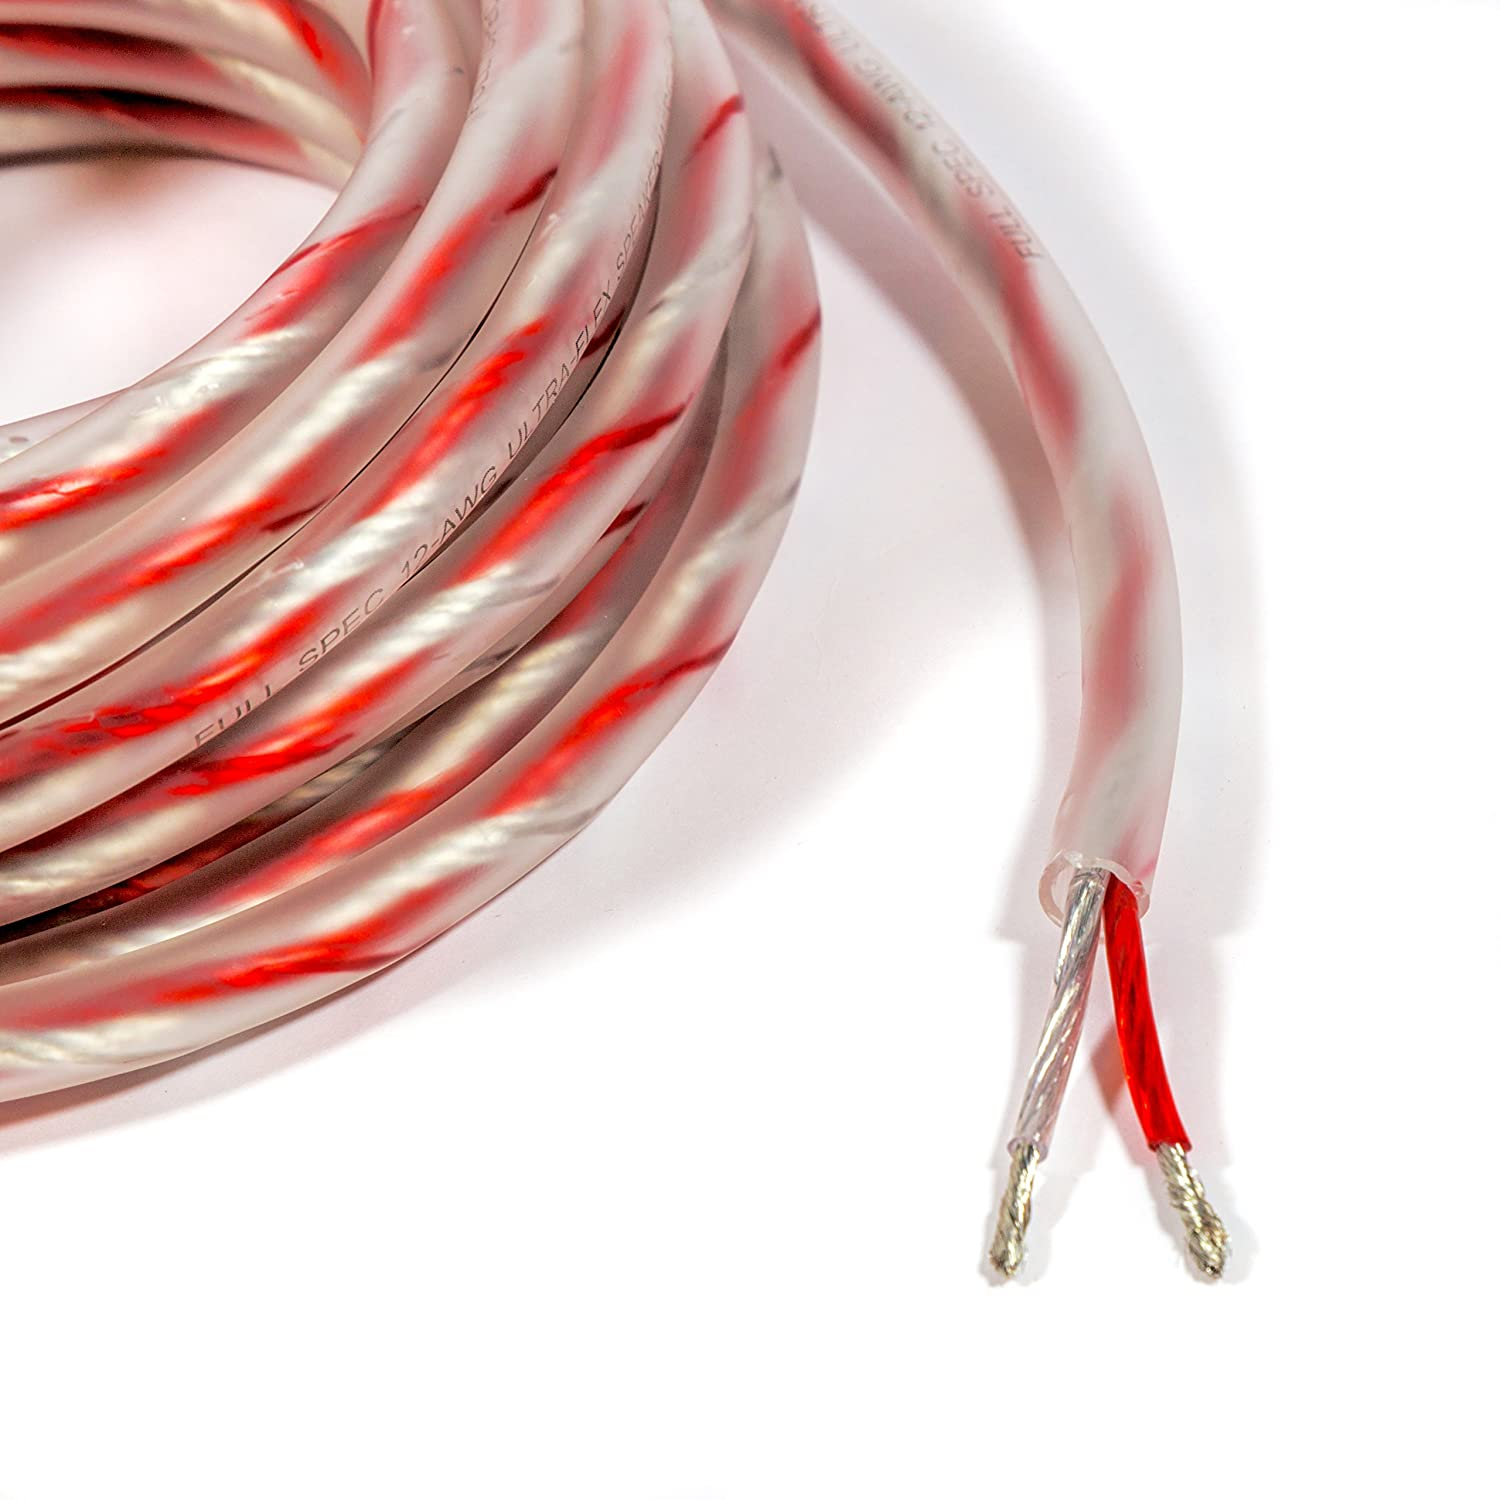 34 ft. 16-AWG High-Strand Car Speaker Wire Carwires SW1600-34 Bravo View Technology